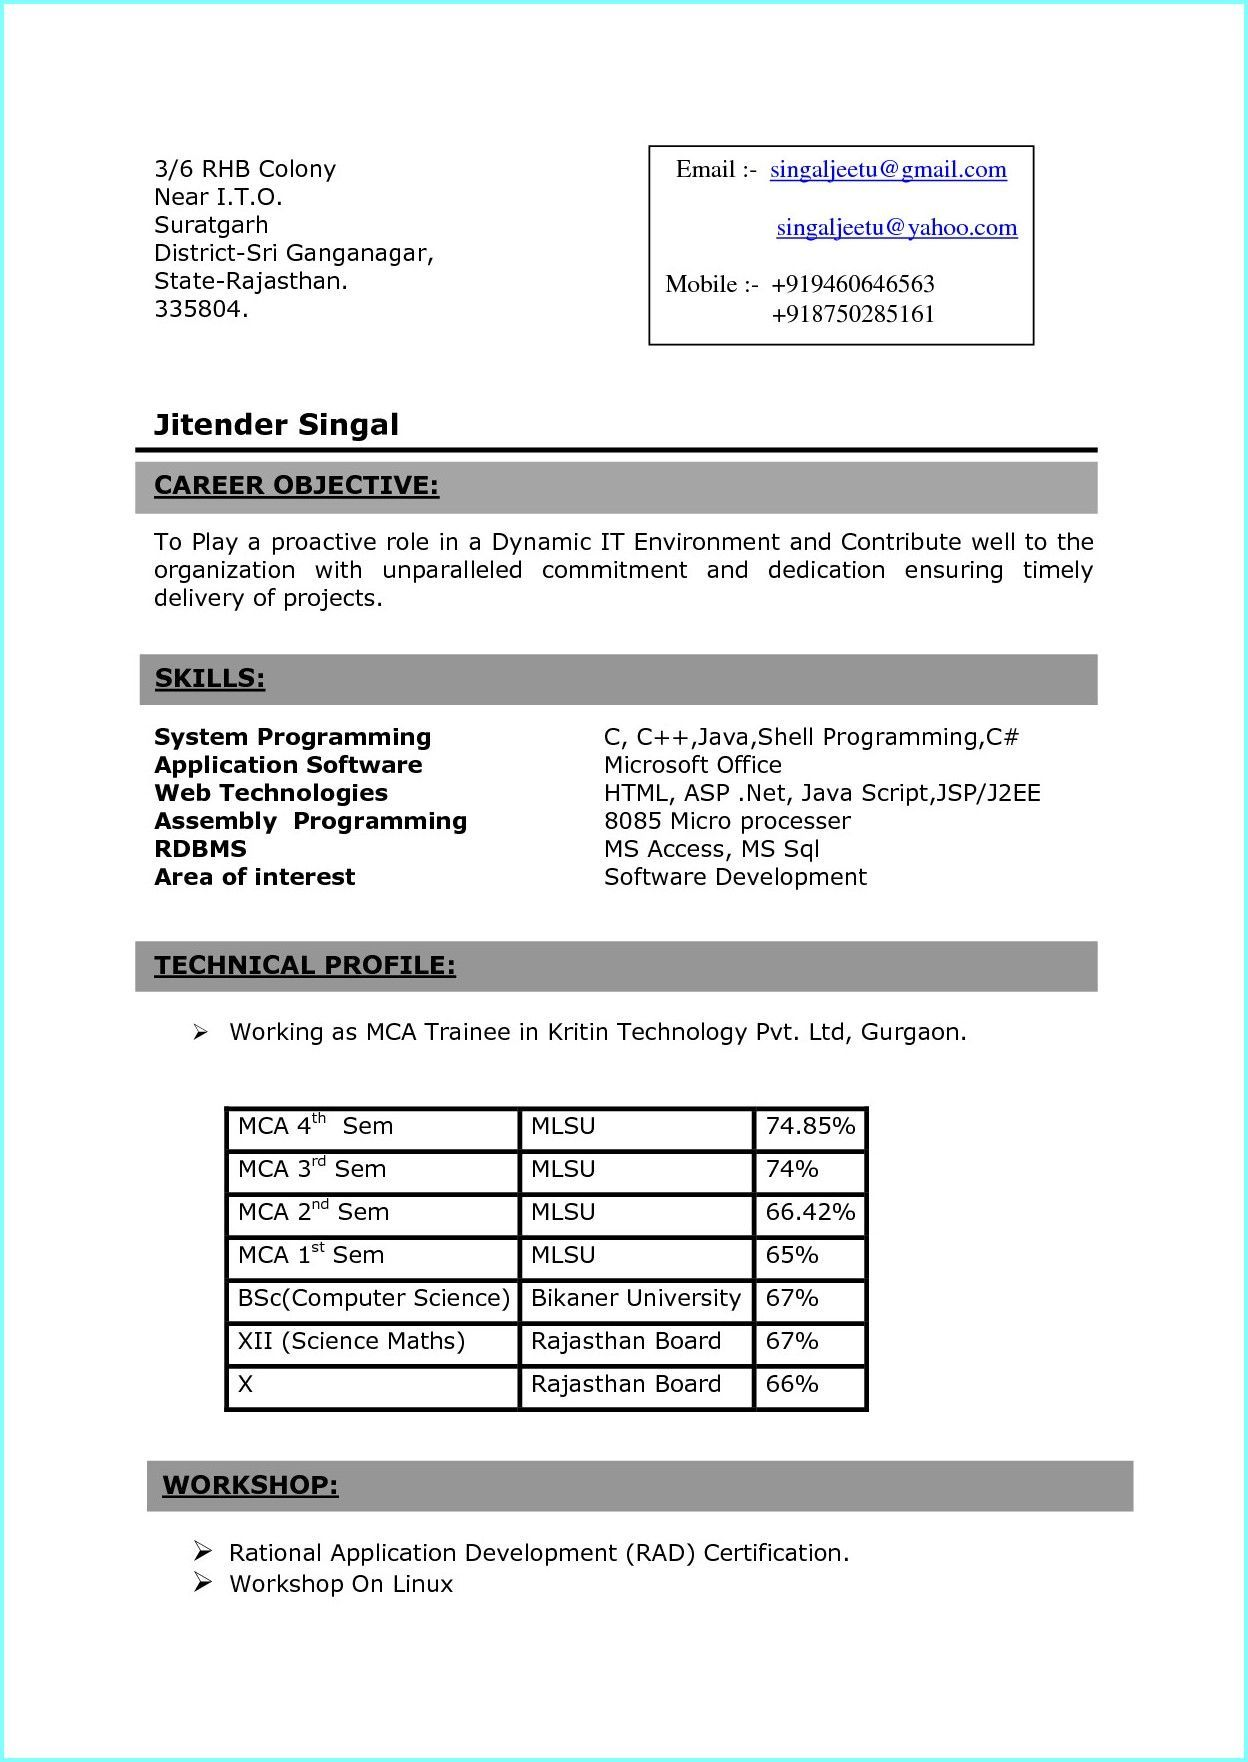 Bsc Nursing Resume Format For Freshers Download Resume Resume Examples L13qbd1wme Resumetip Resume Format For Freshers Resume Format Nursing Resume